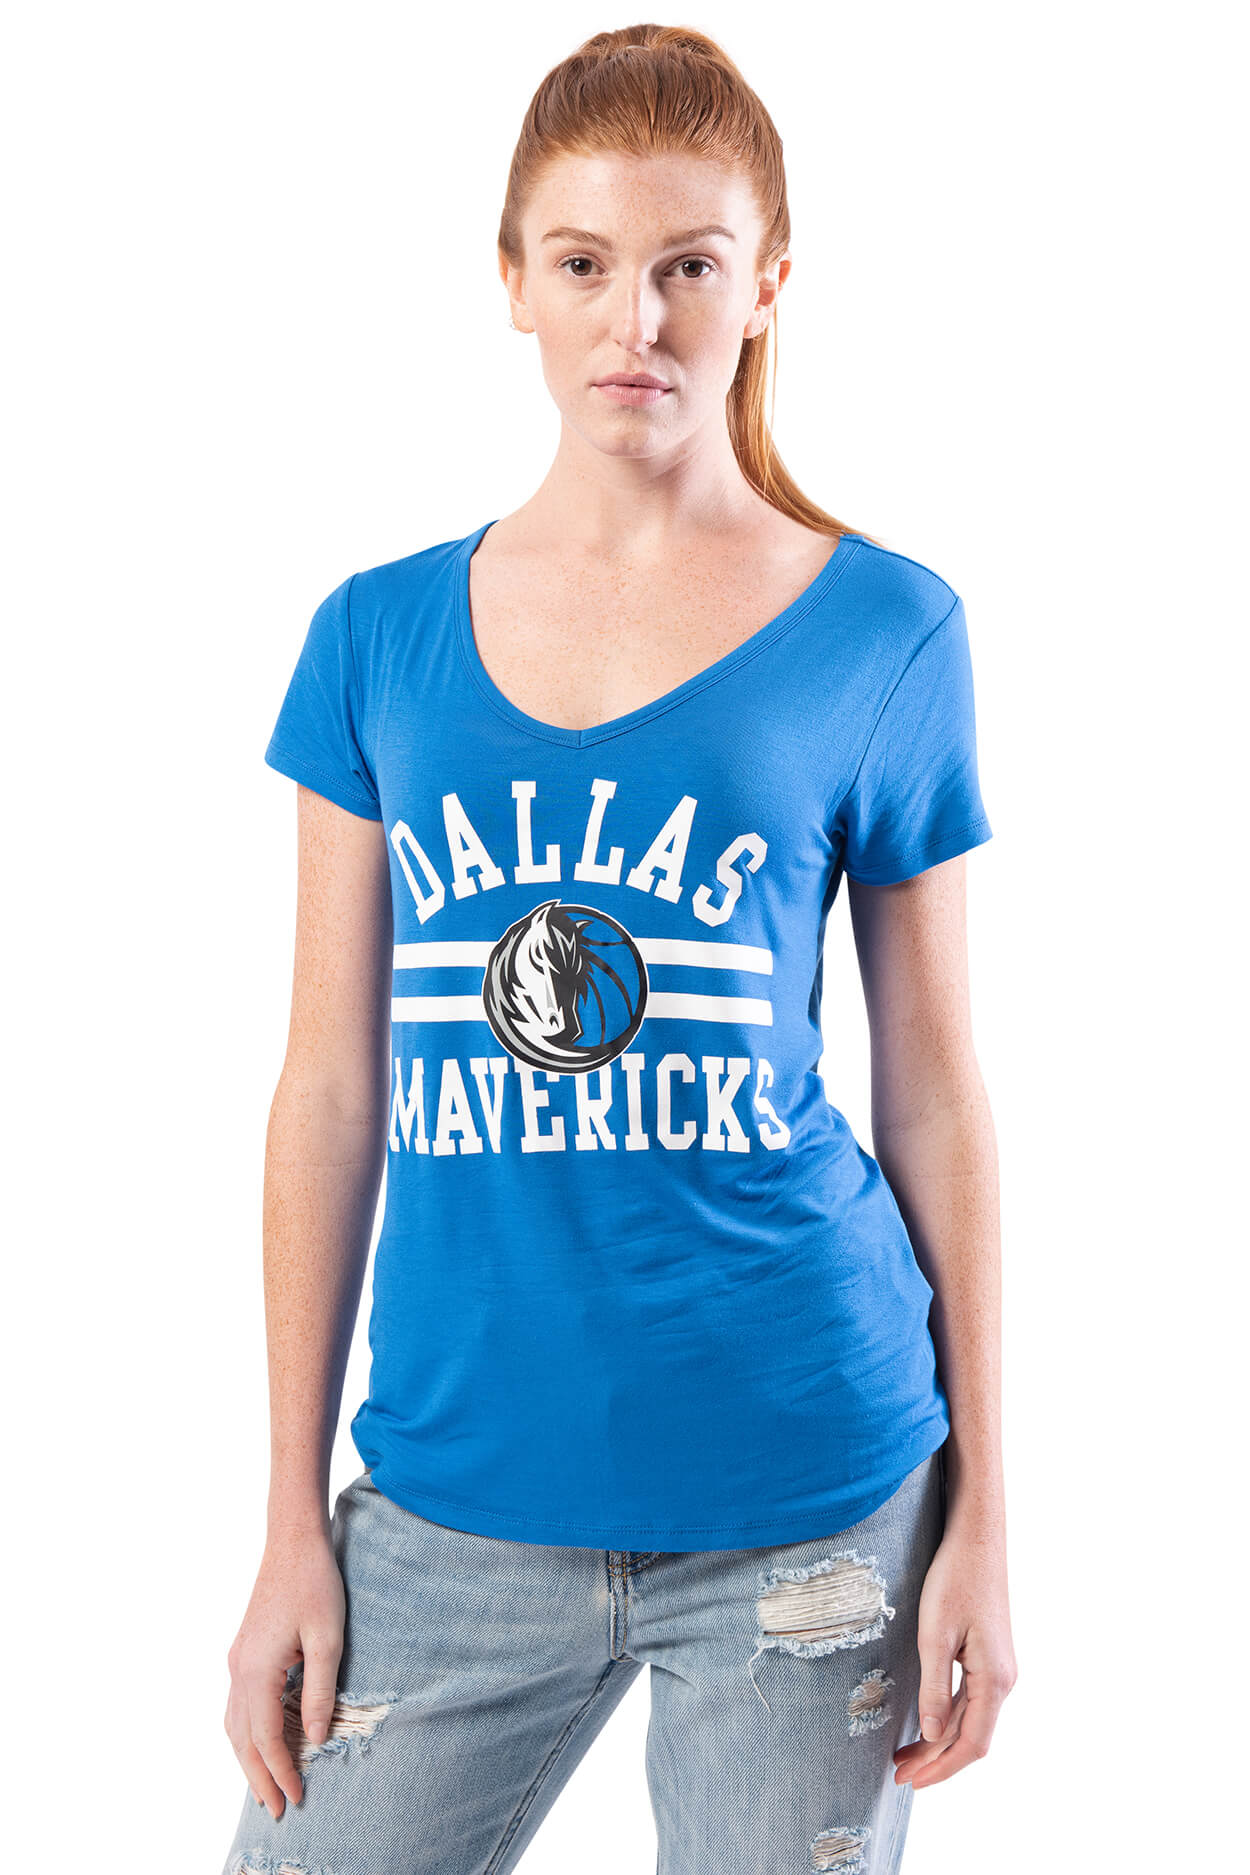 NBA Dallas Mavericks Women's Short Sleeve Tee|Dallas Mavericks